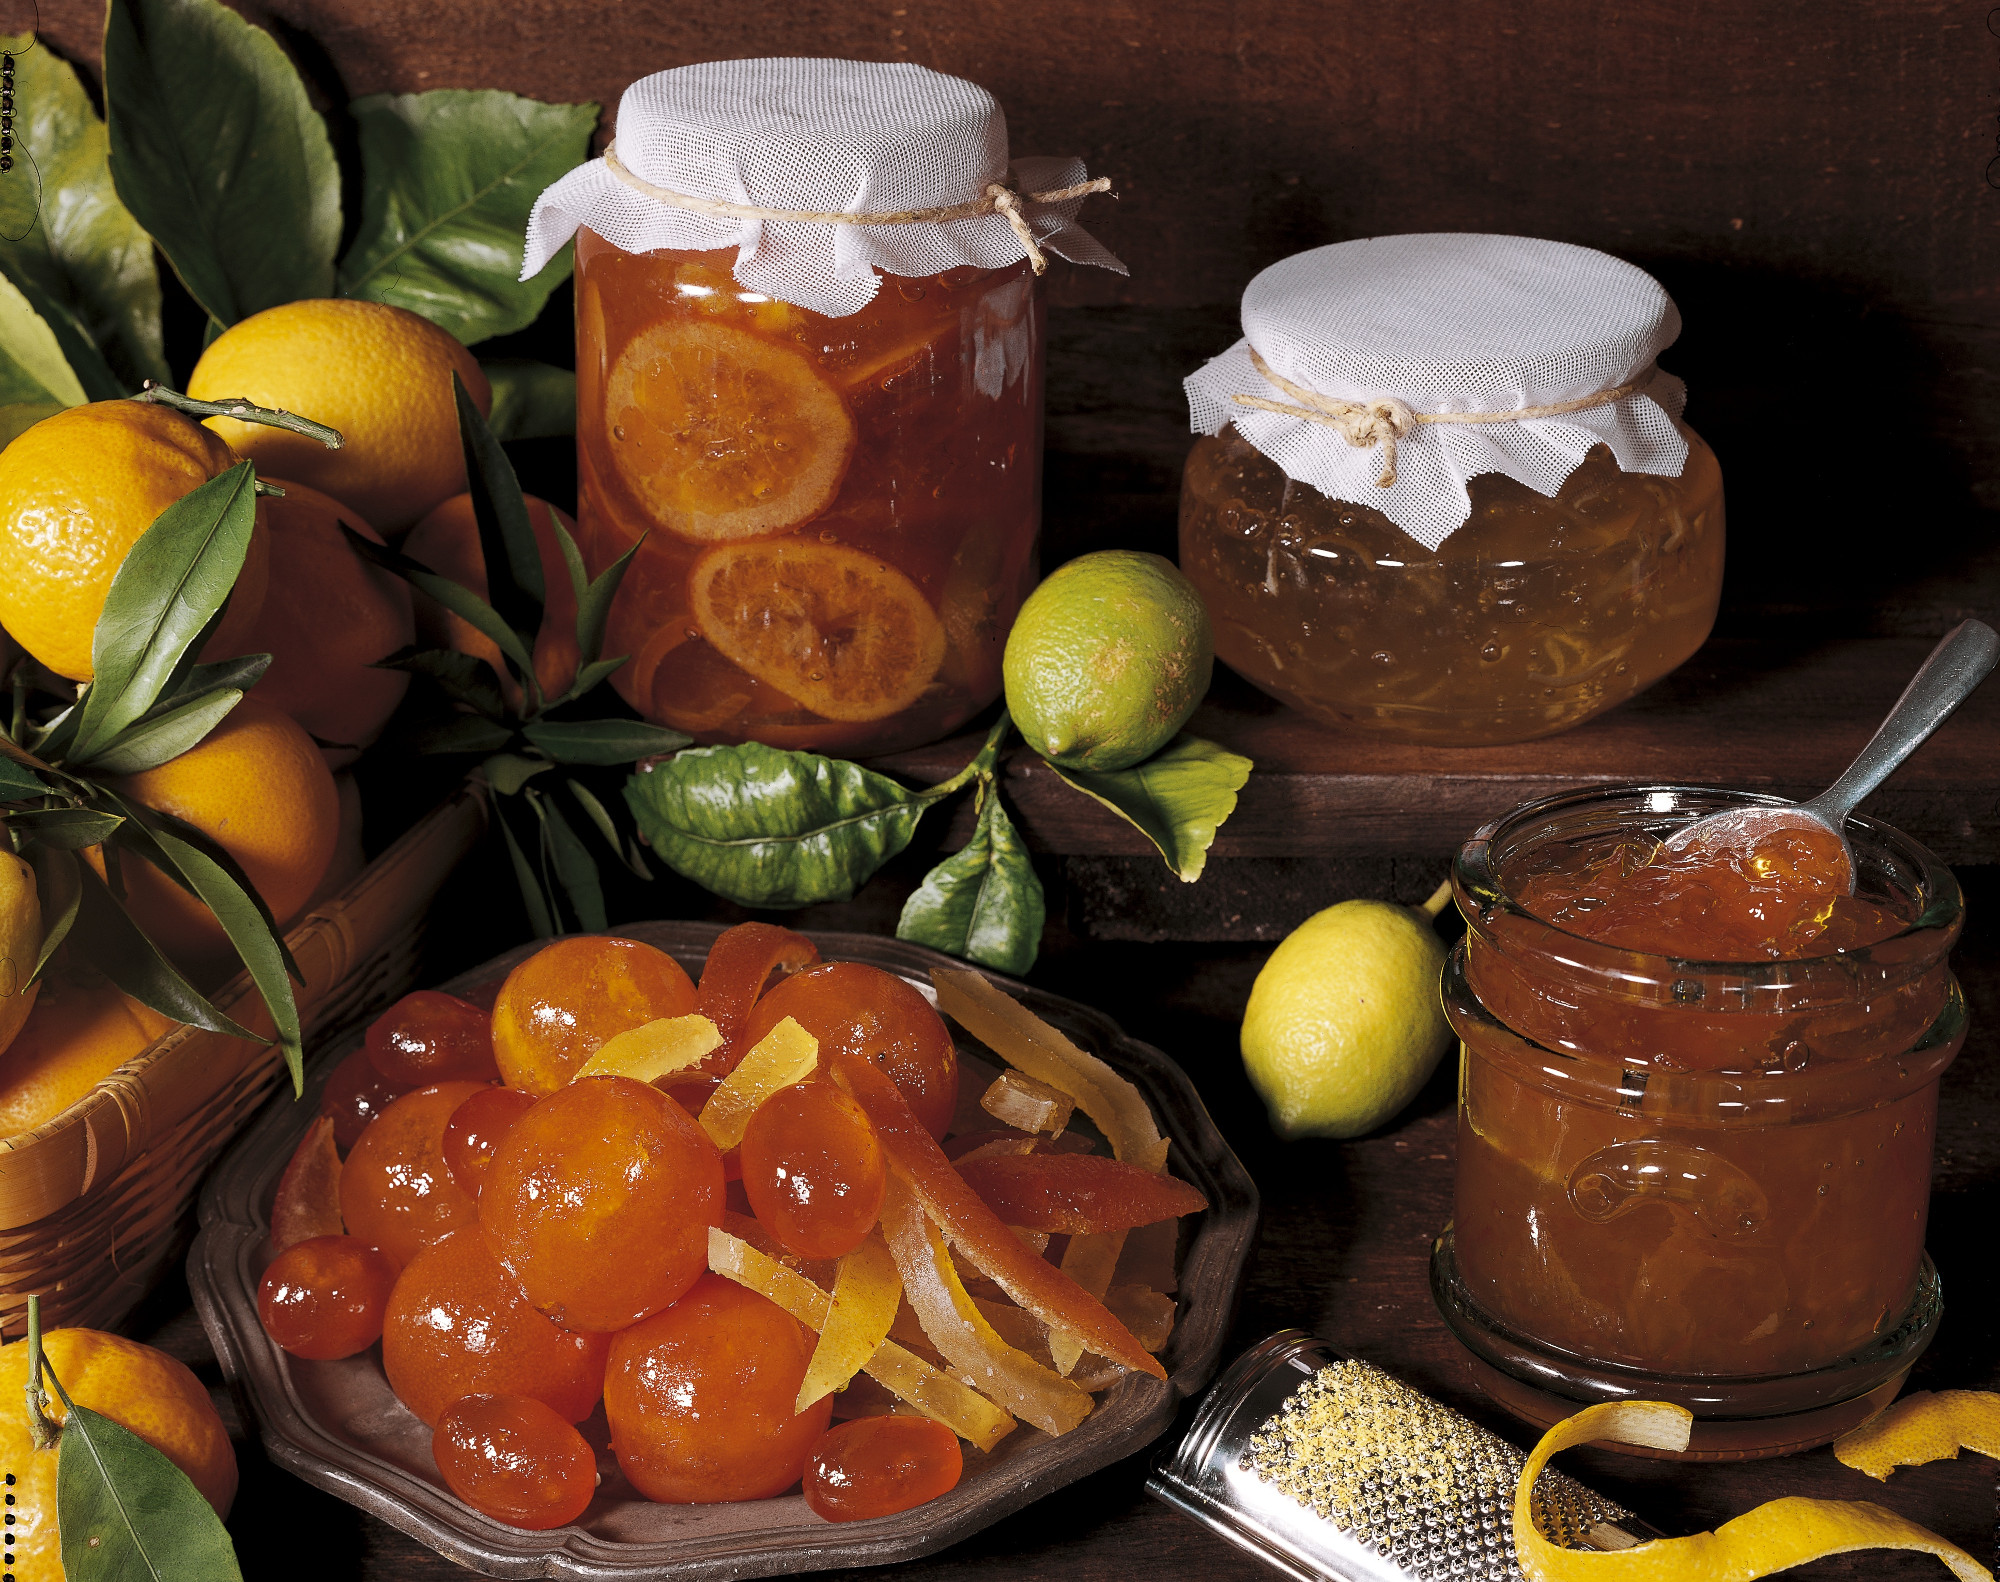 13th Marmalade Awards to be announced in England